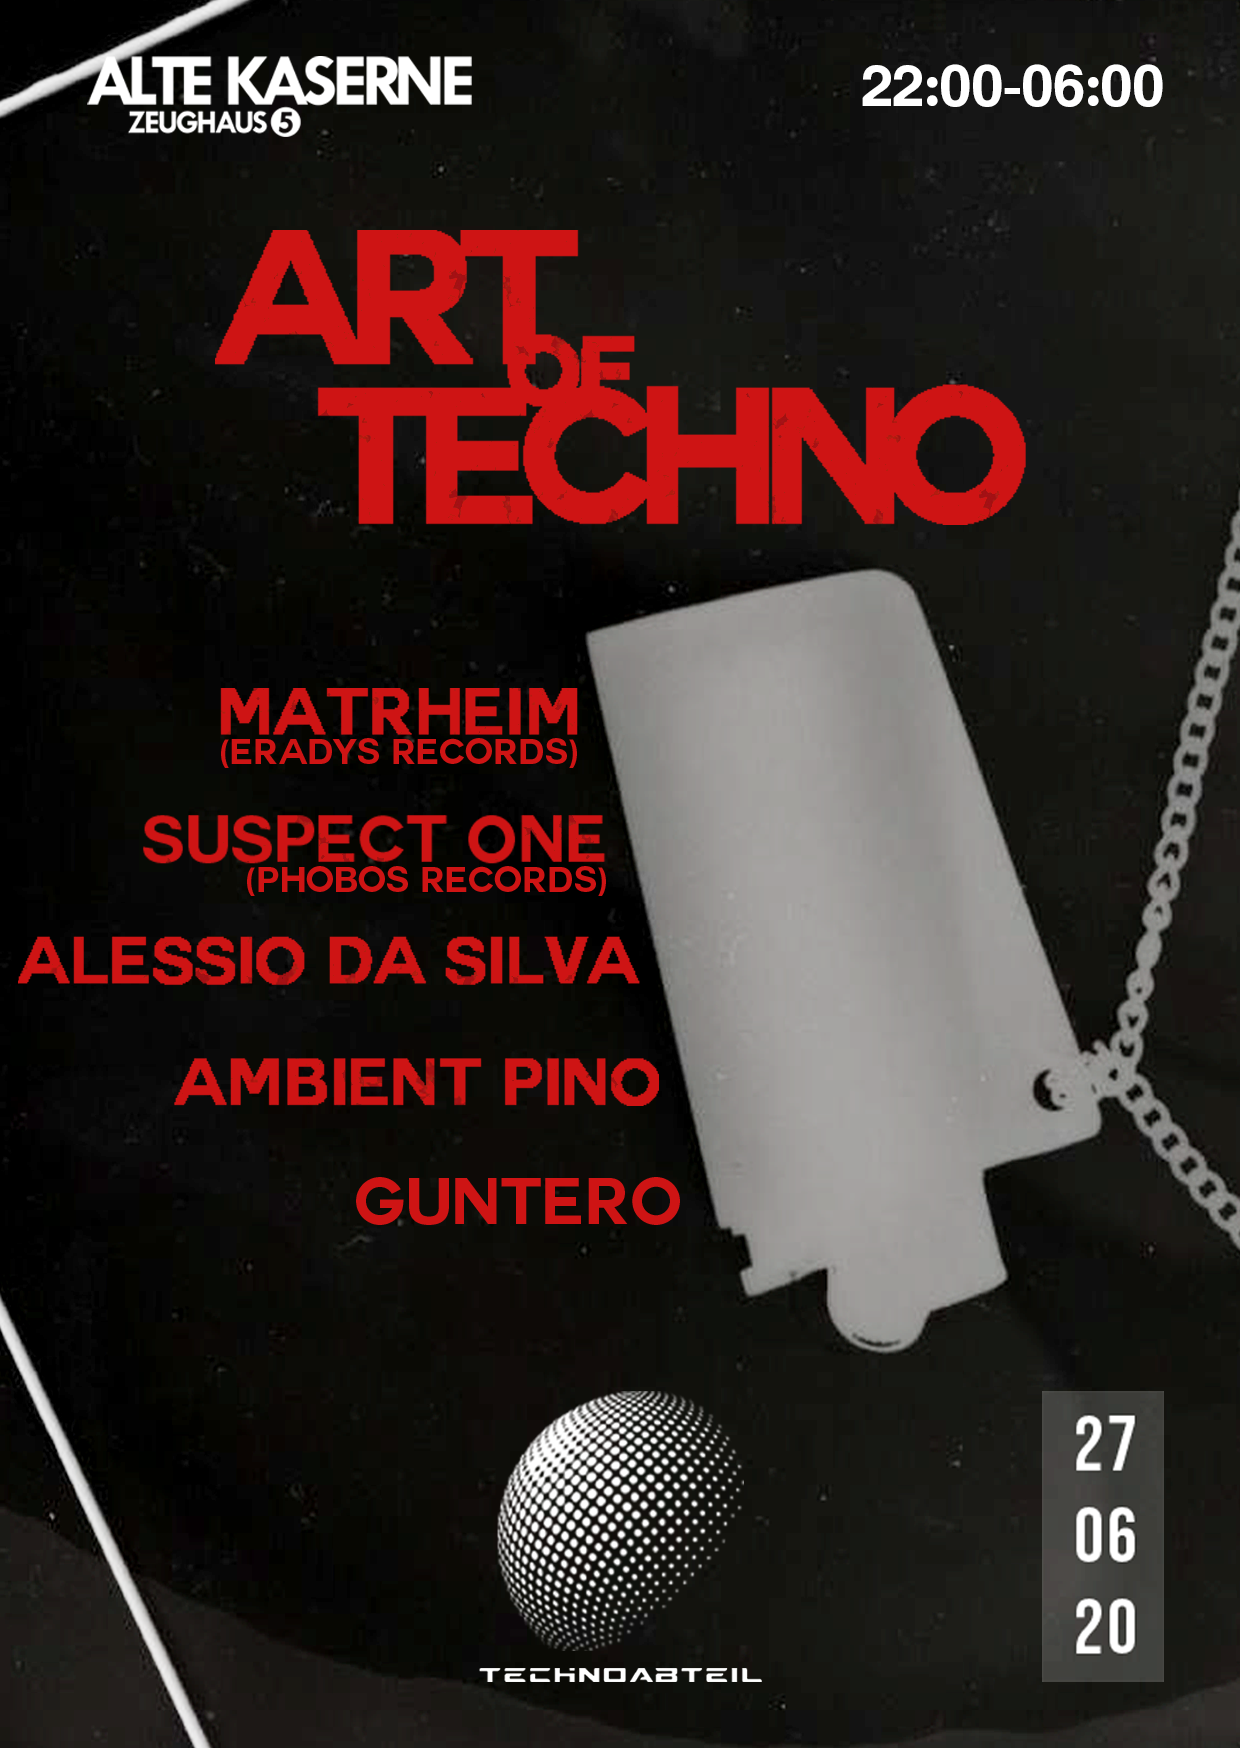 Art of Techno w/ TECHNOABTEIL